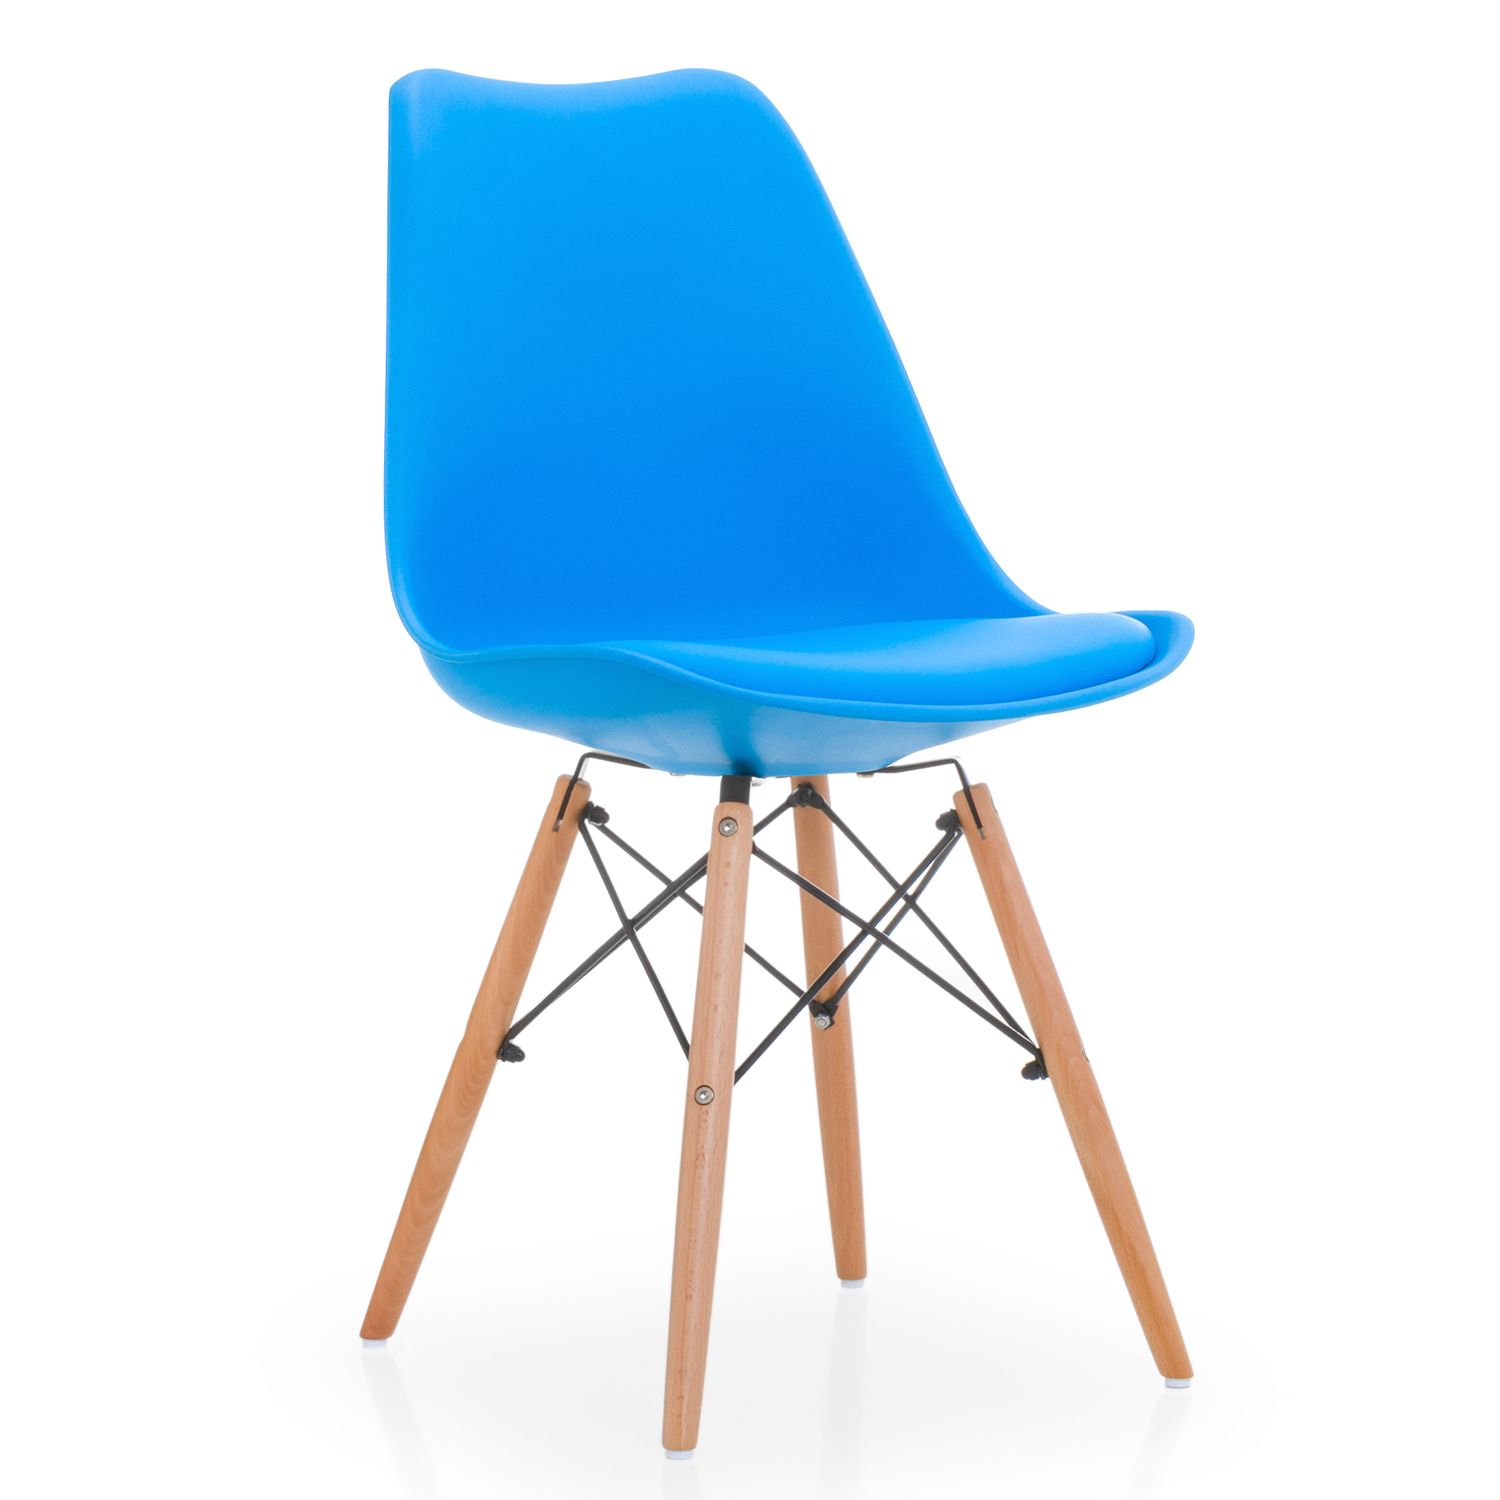 dining chair plastic leather cushion bright blue wooden legs